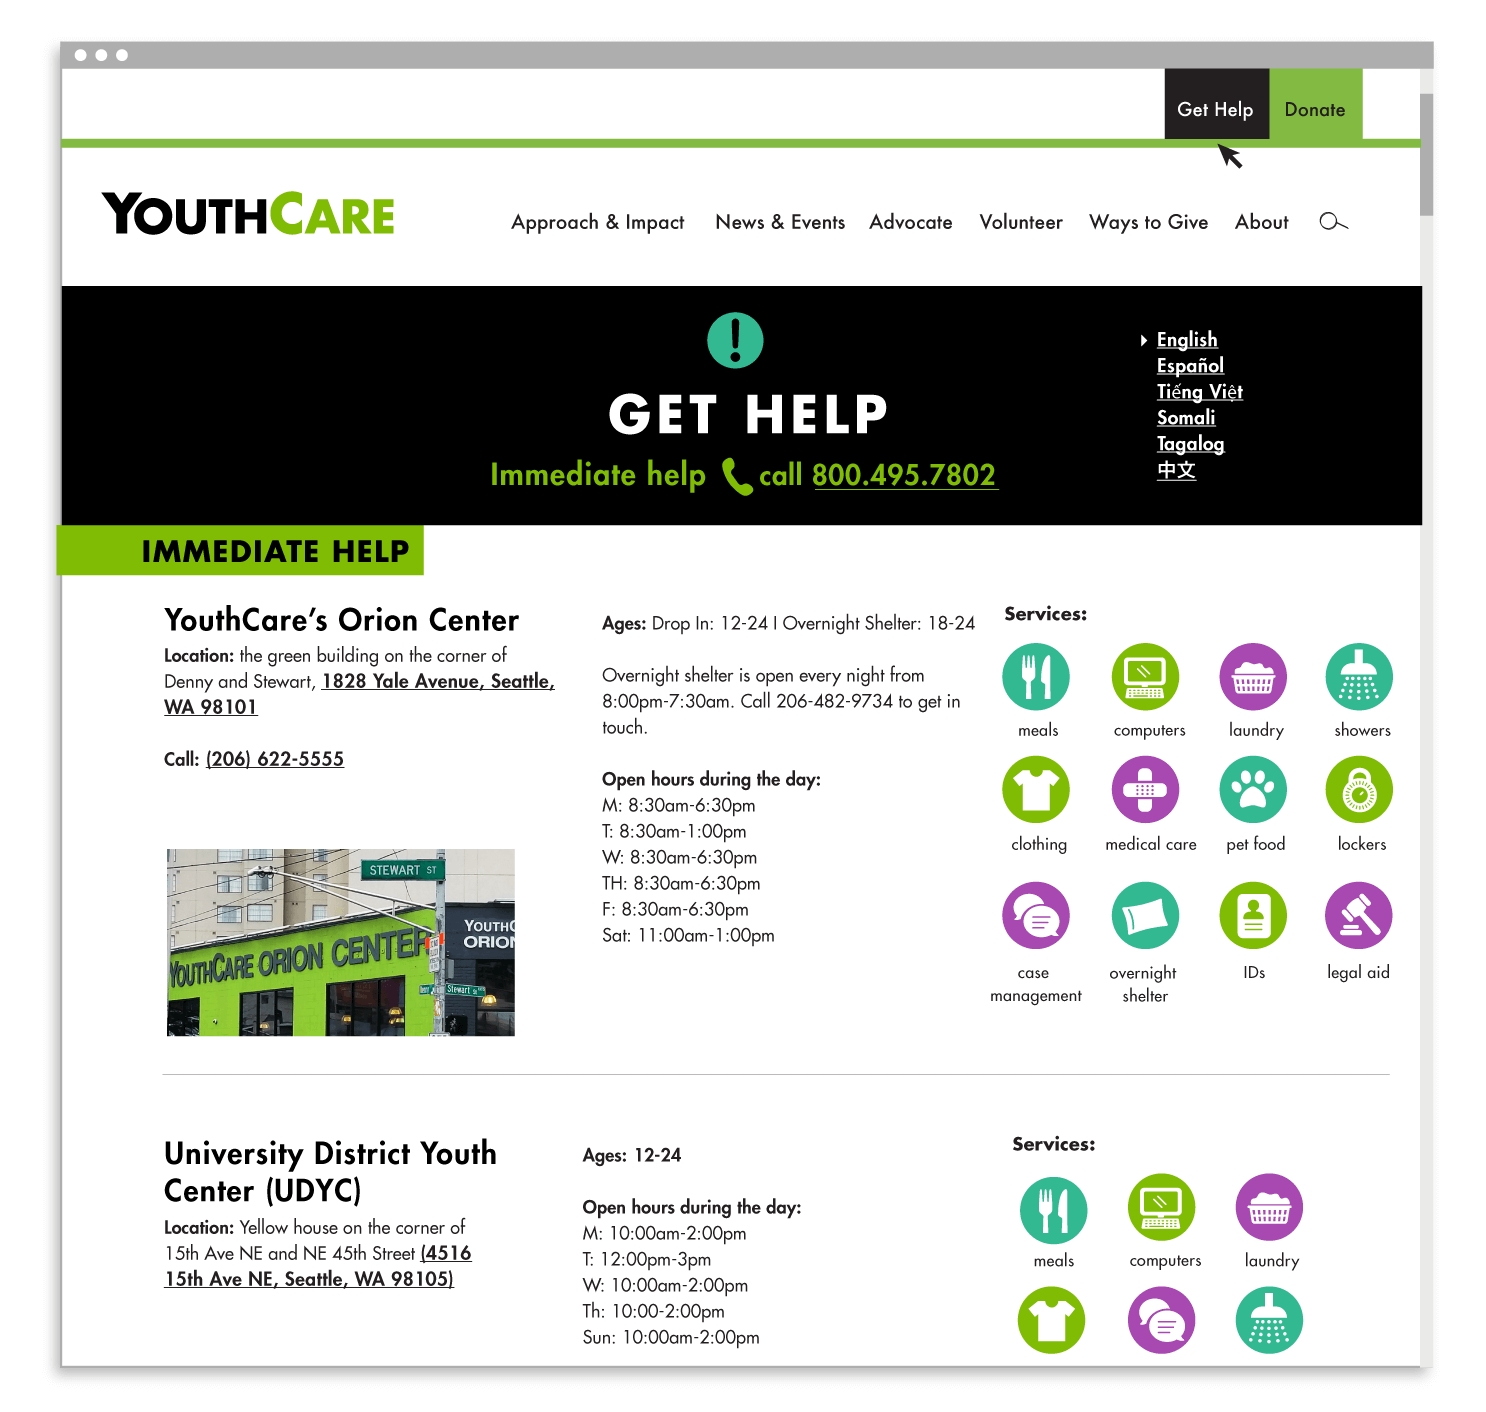 Kat-Marshello-YouthCare-Website-Design-GetHelp.png